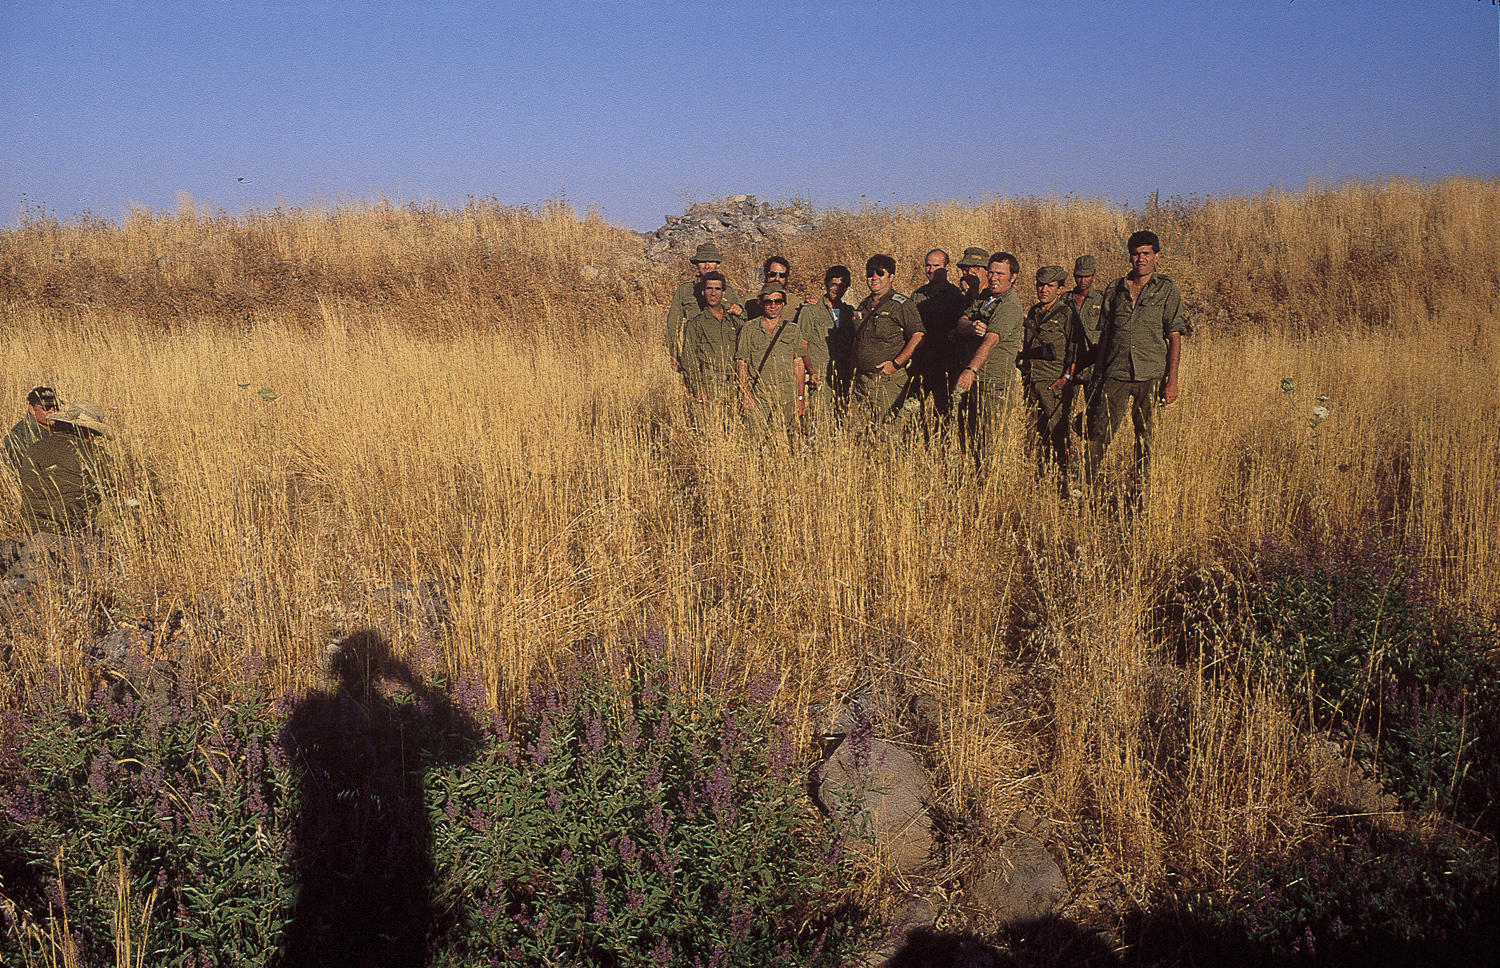 Group - Golan Heights, 1990